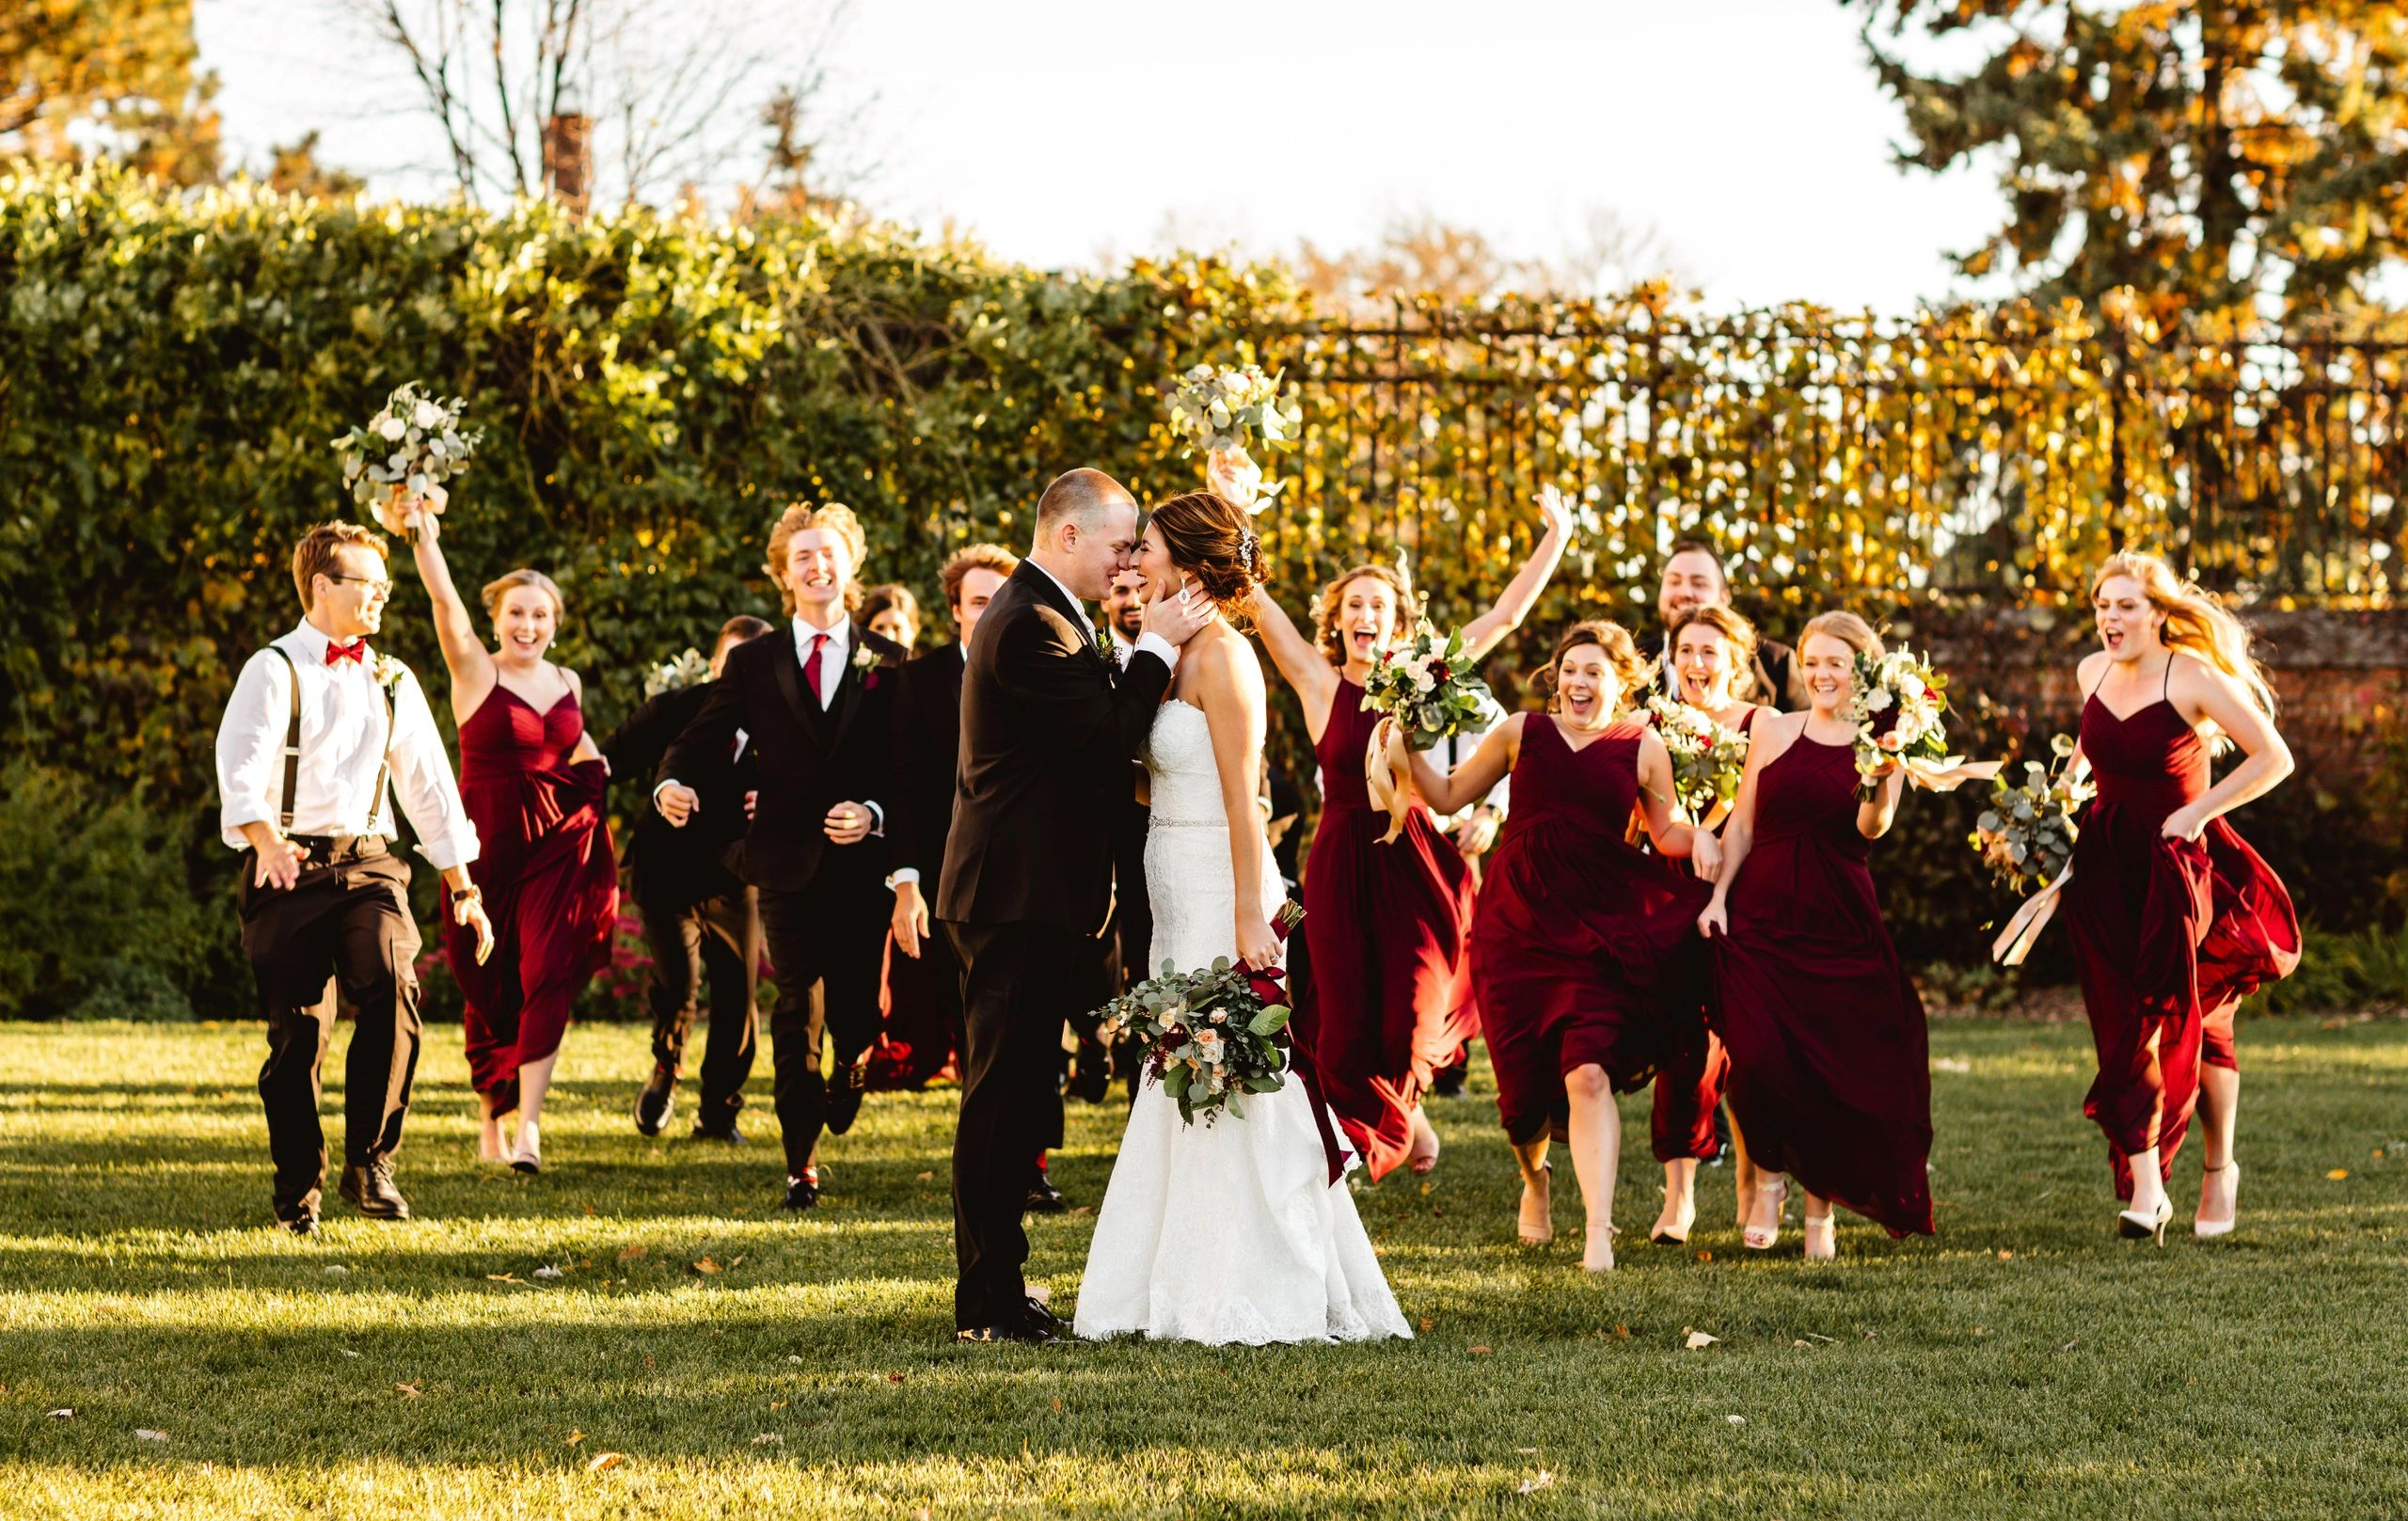 Wedding Blessings Photography: Wedding Photography In St. Cloud